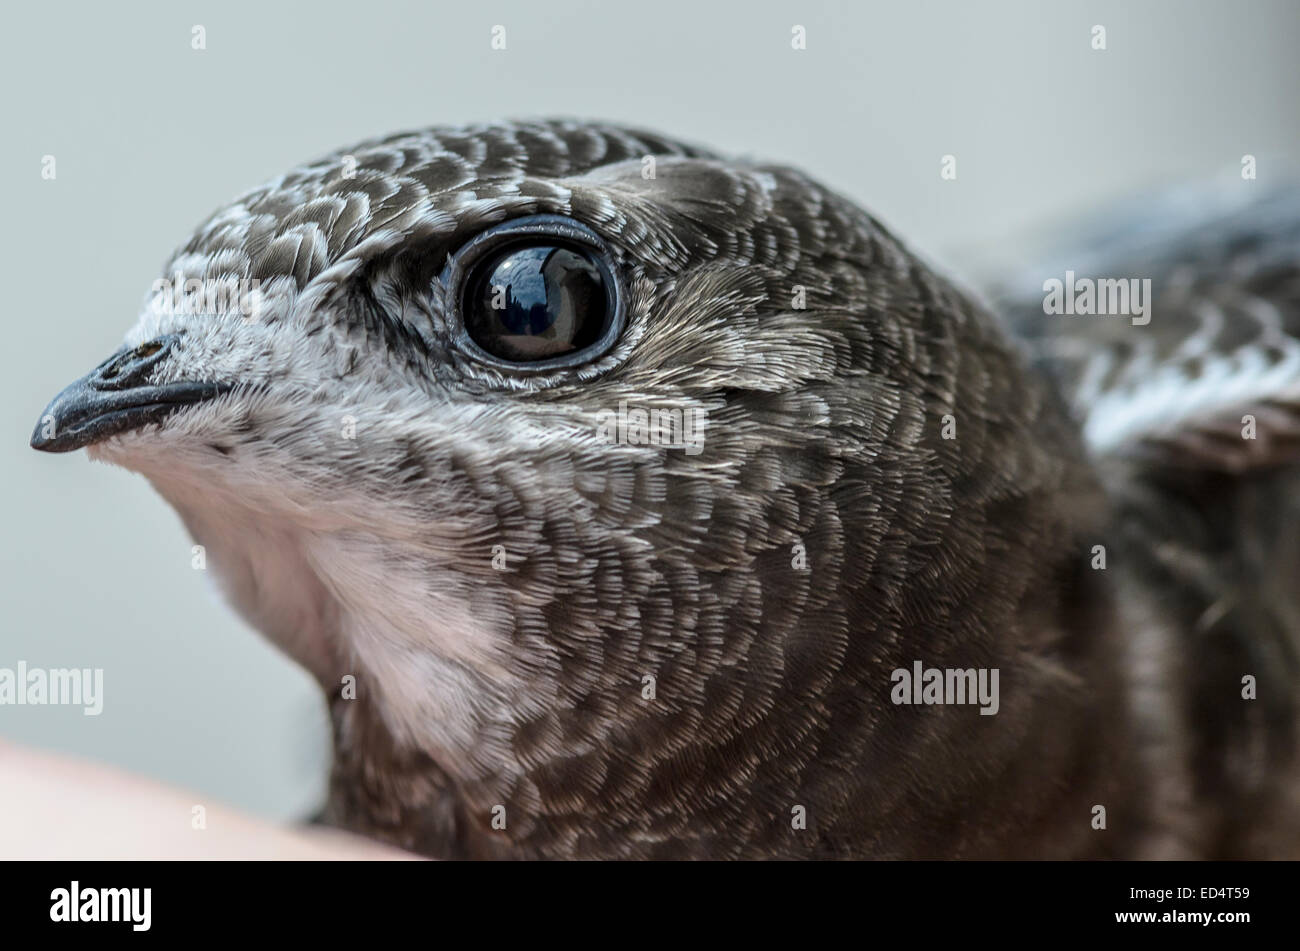 Closeup of a rescued swift - Stock Image